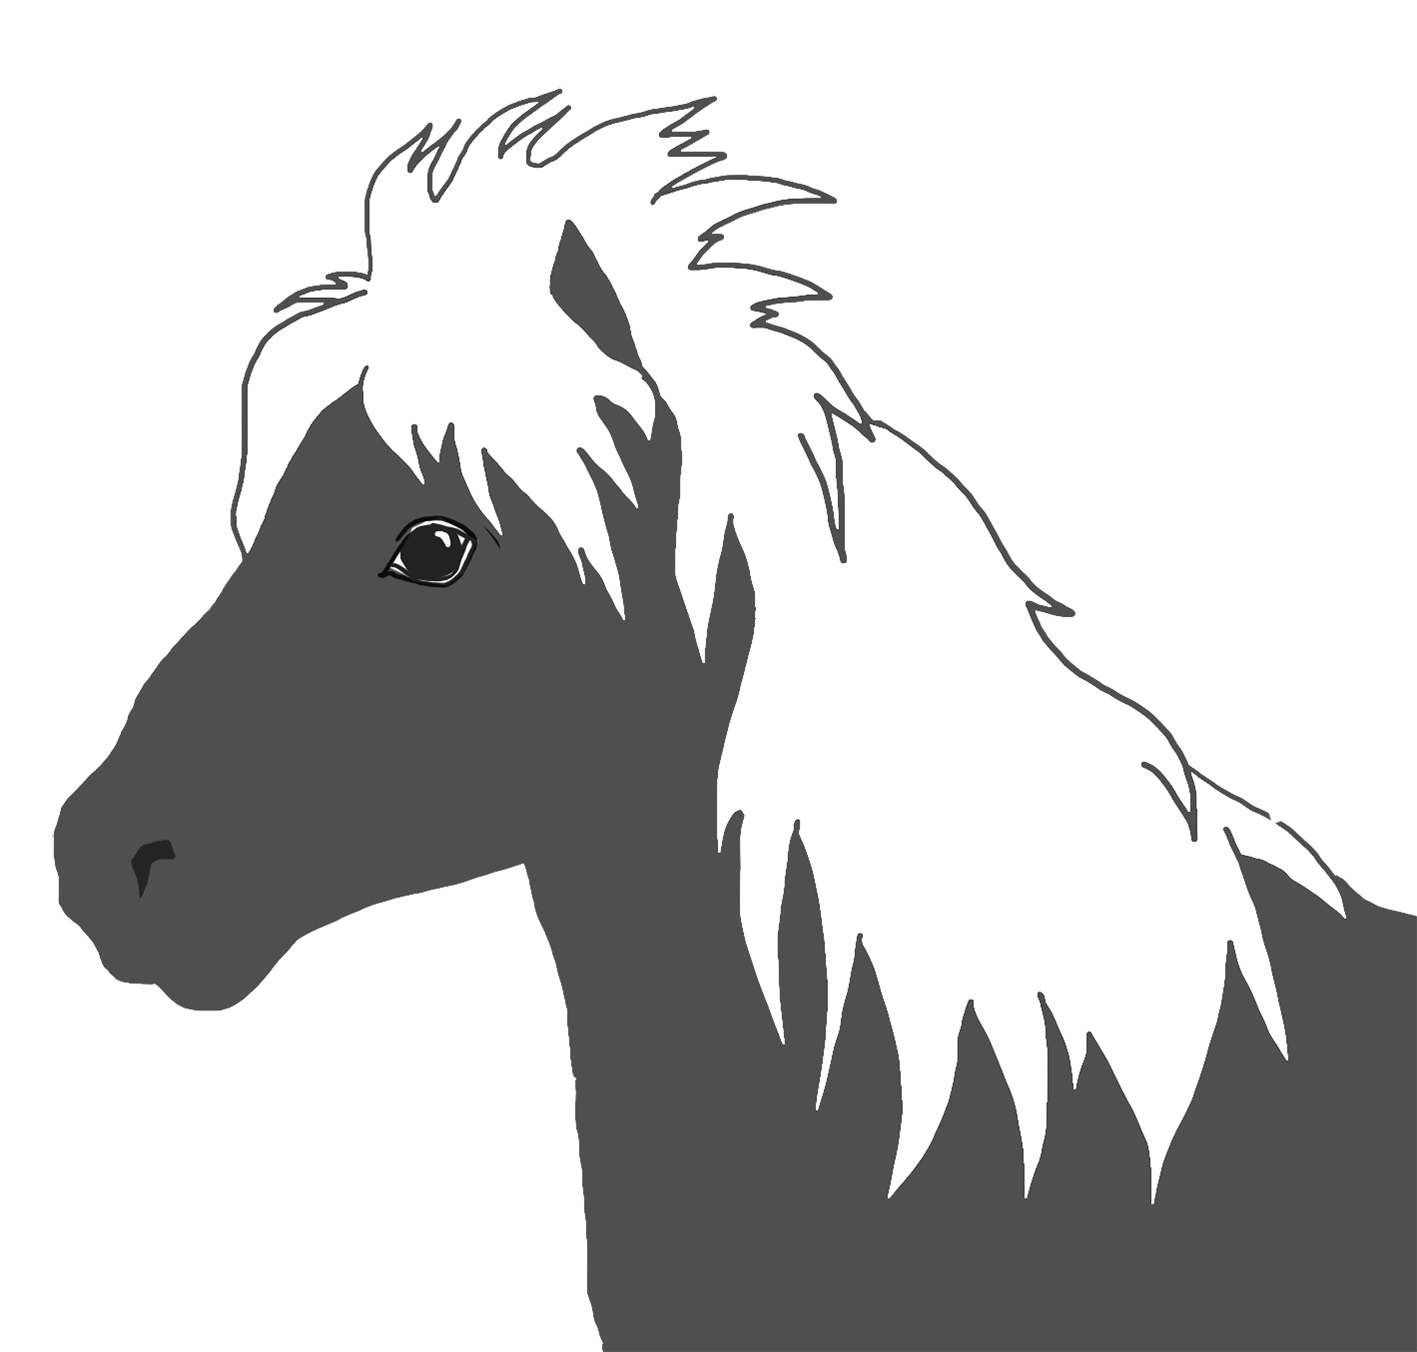 Horseshoe clipart horse camp. Silhouette white mane png